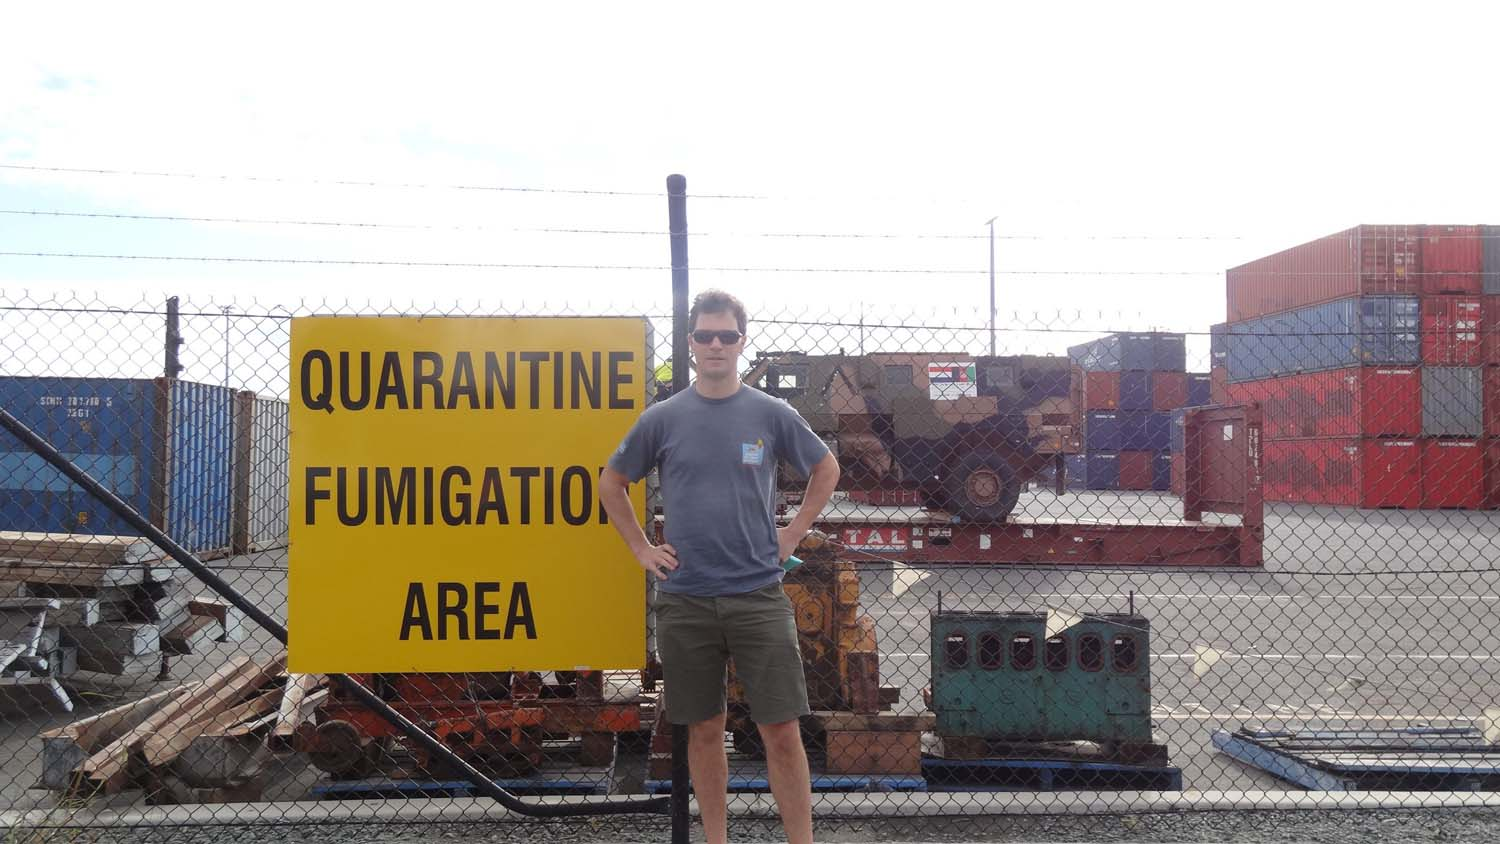 quarantine yard in Bribane